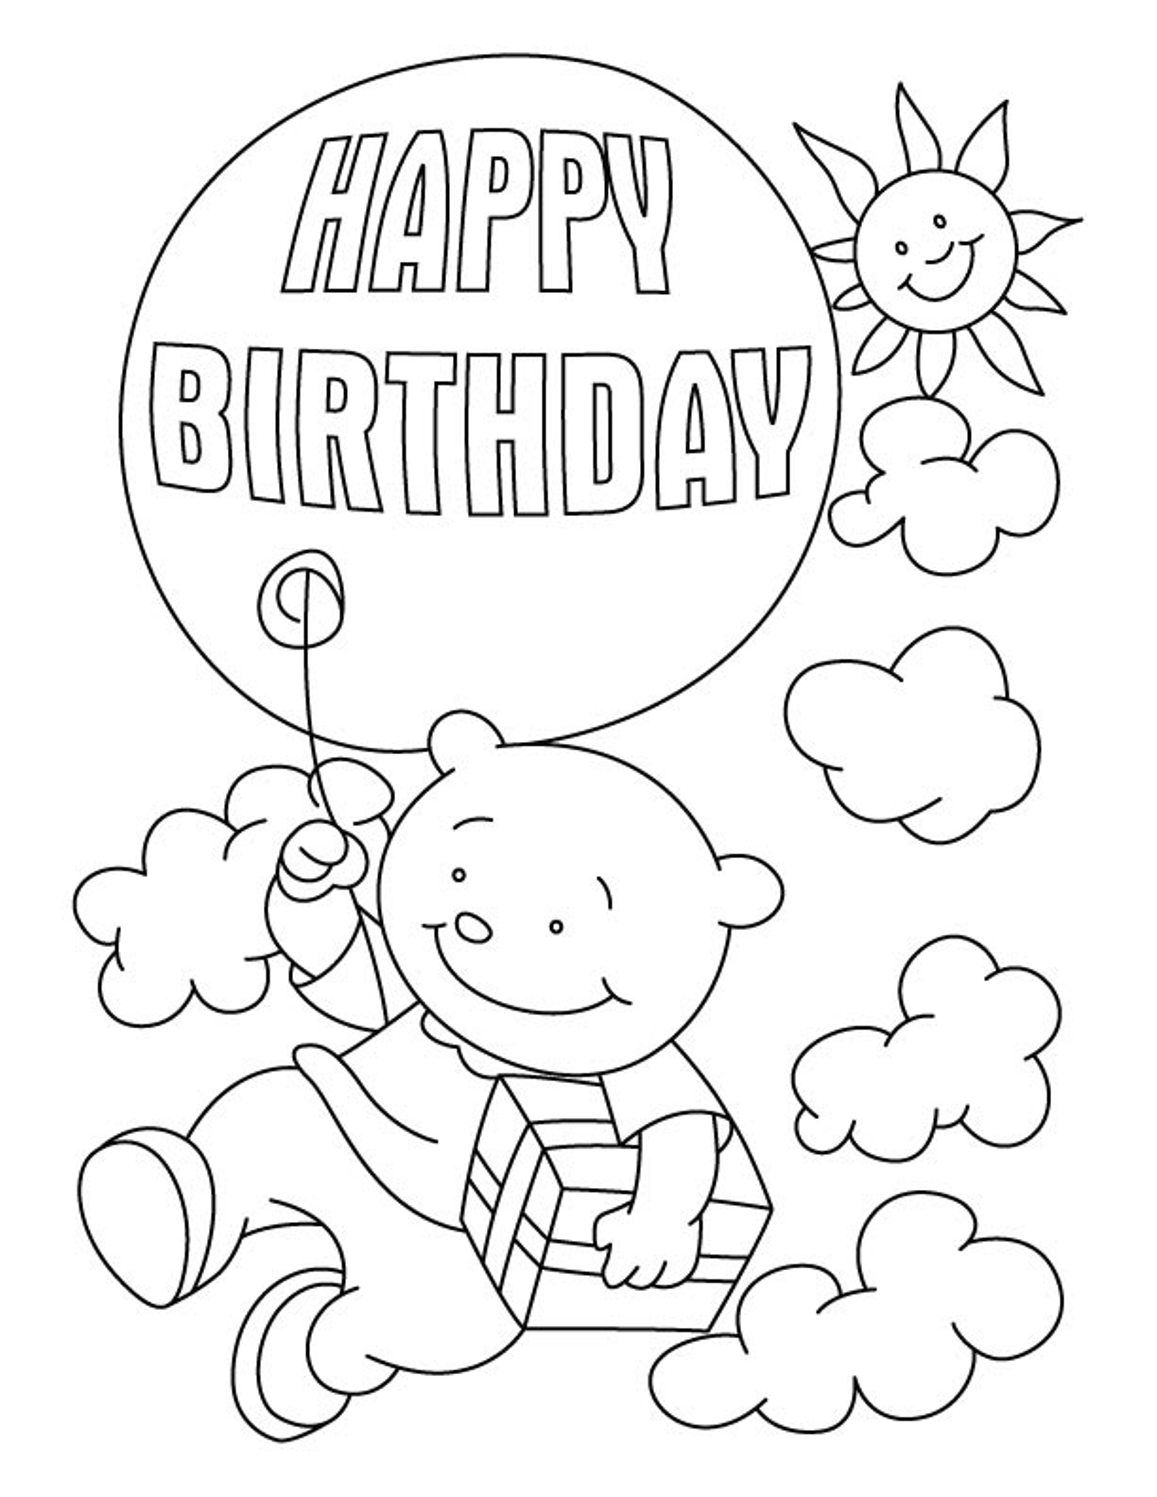 Image result for happy birthday cards | Puppy coloring pages ... | 1497x1157